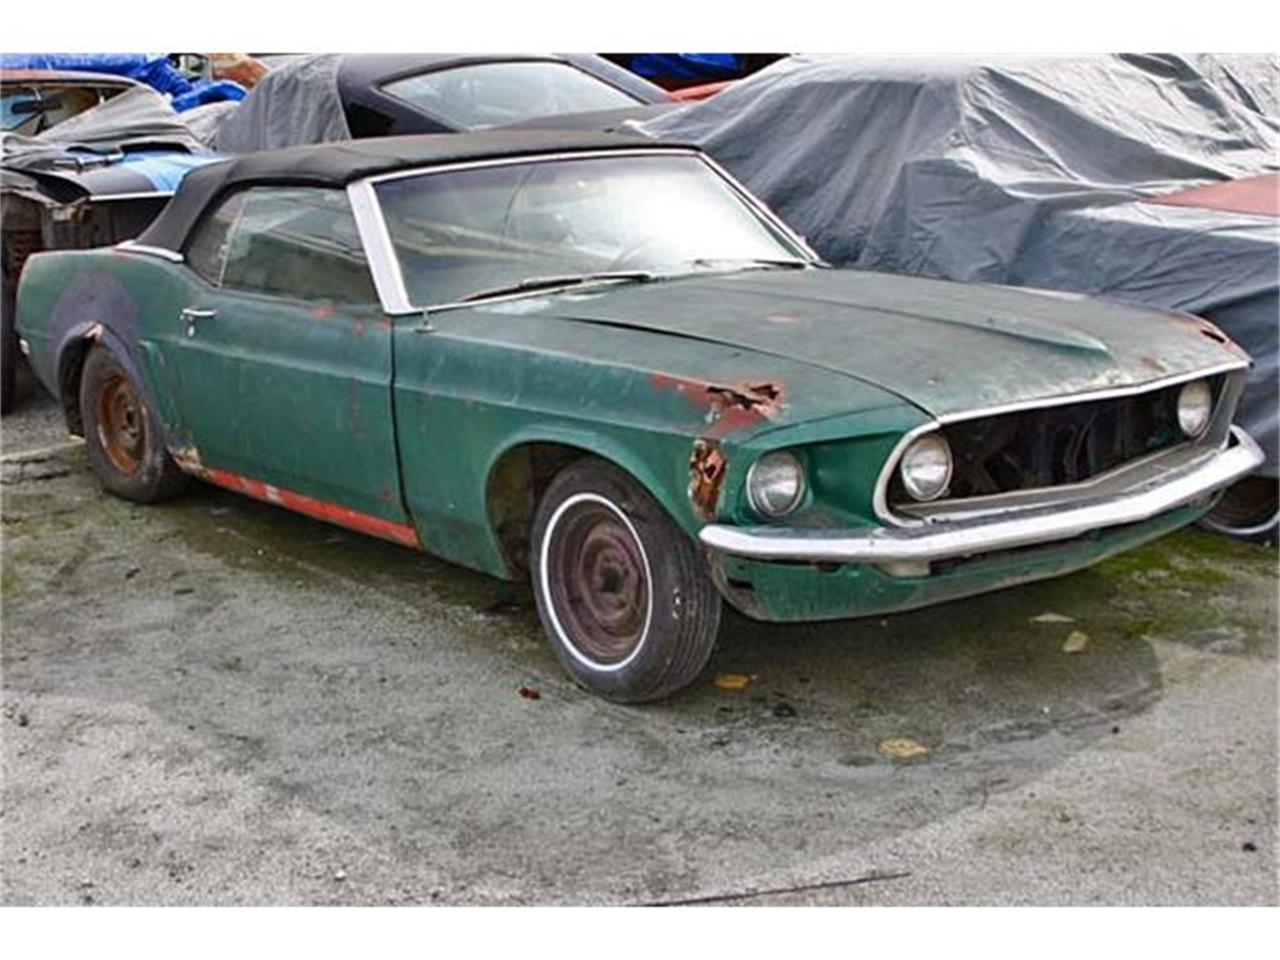 Large picture of 69 mustang awbj